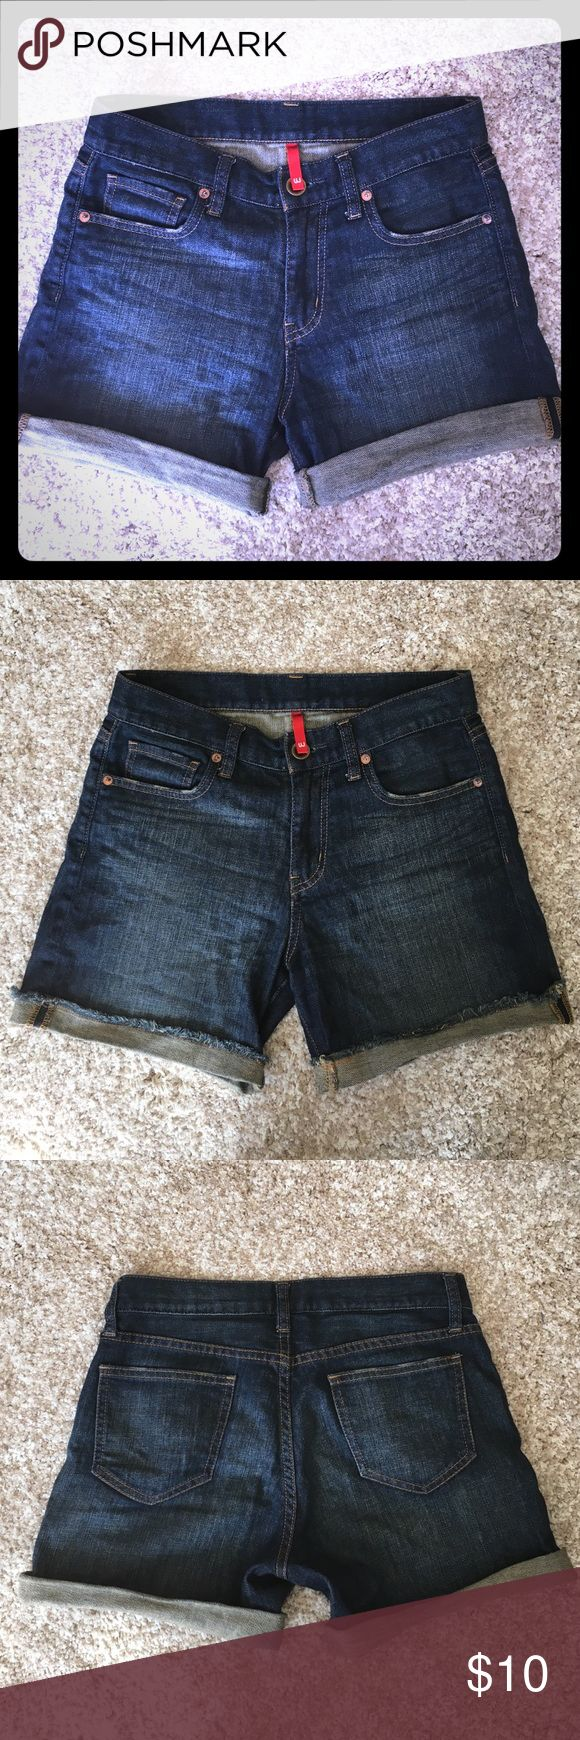 Uniqlo jean shorts Uniqlo Jean shorts, relaxed fit. Can keep medium length to show the frayed design, or roll up to desired height. The size on tag says 150/56A, but it's equivalent to size 24 or 25. Uniqlo Shorts Jean Shorts